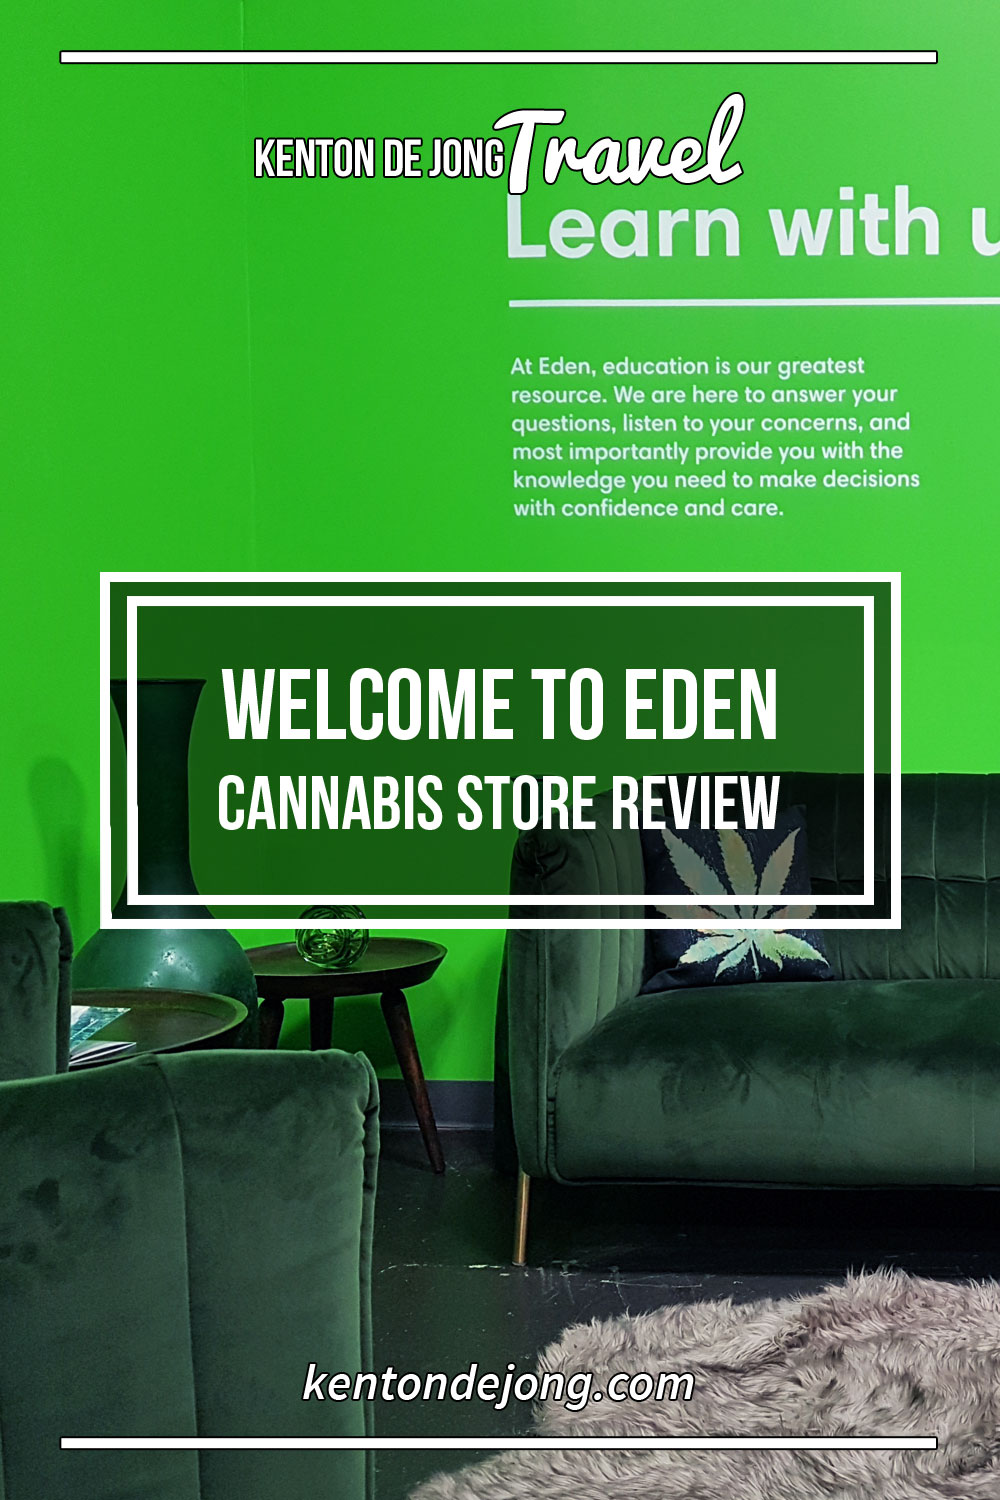 Welcome to Eden - Cannabis Store Review